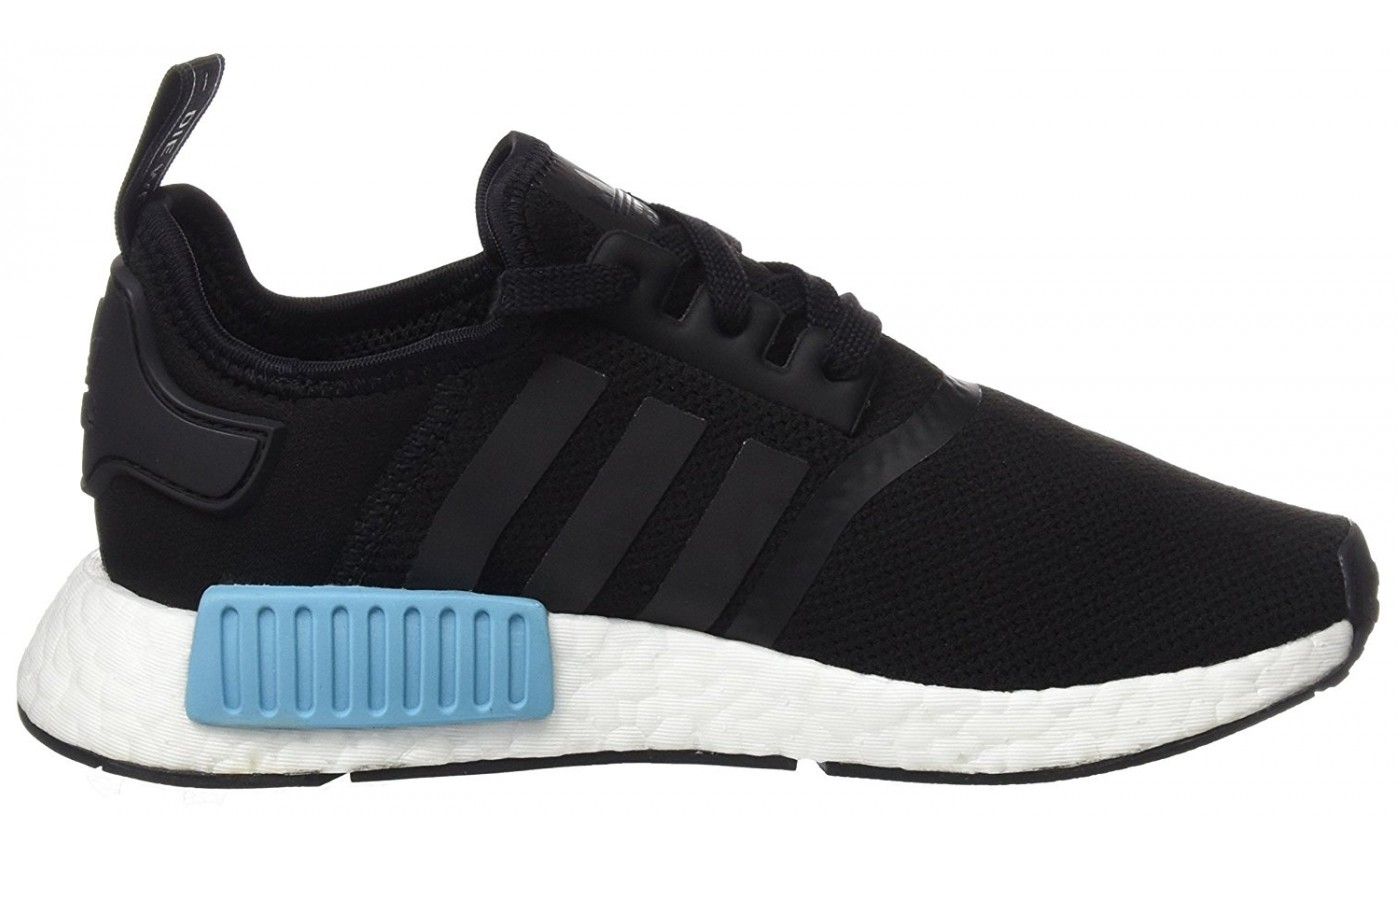 e06c88470 Adidas NMD R1 Reviewed   Tested for Performance in 2019